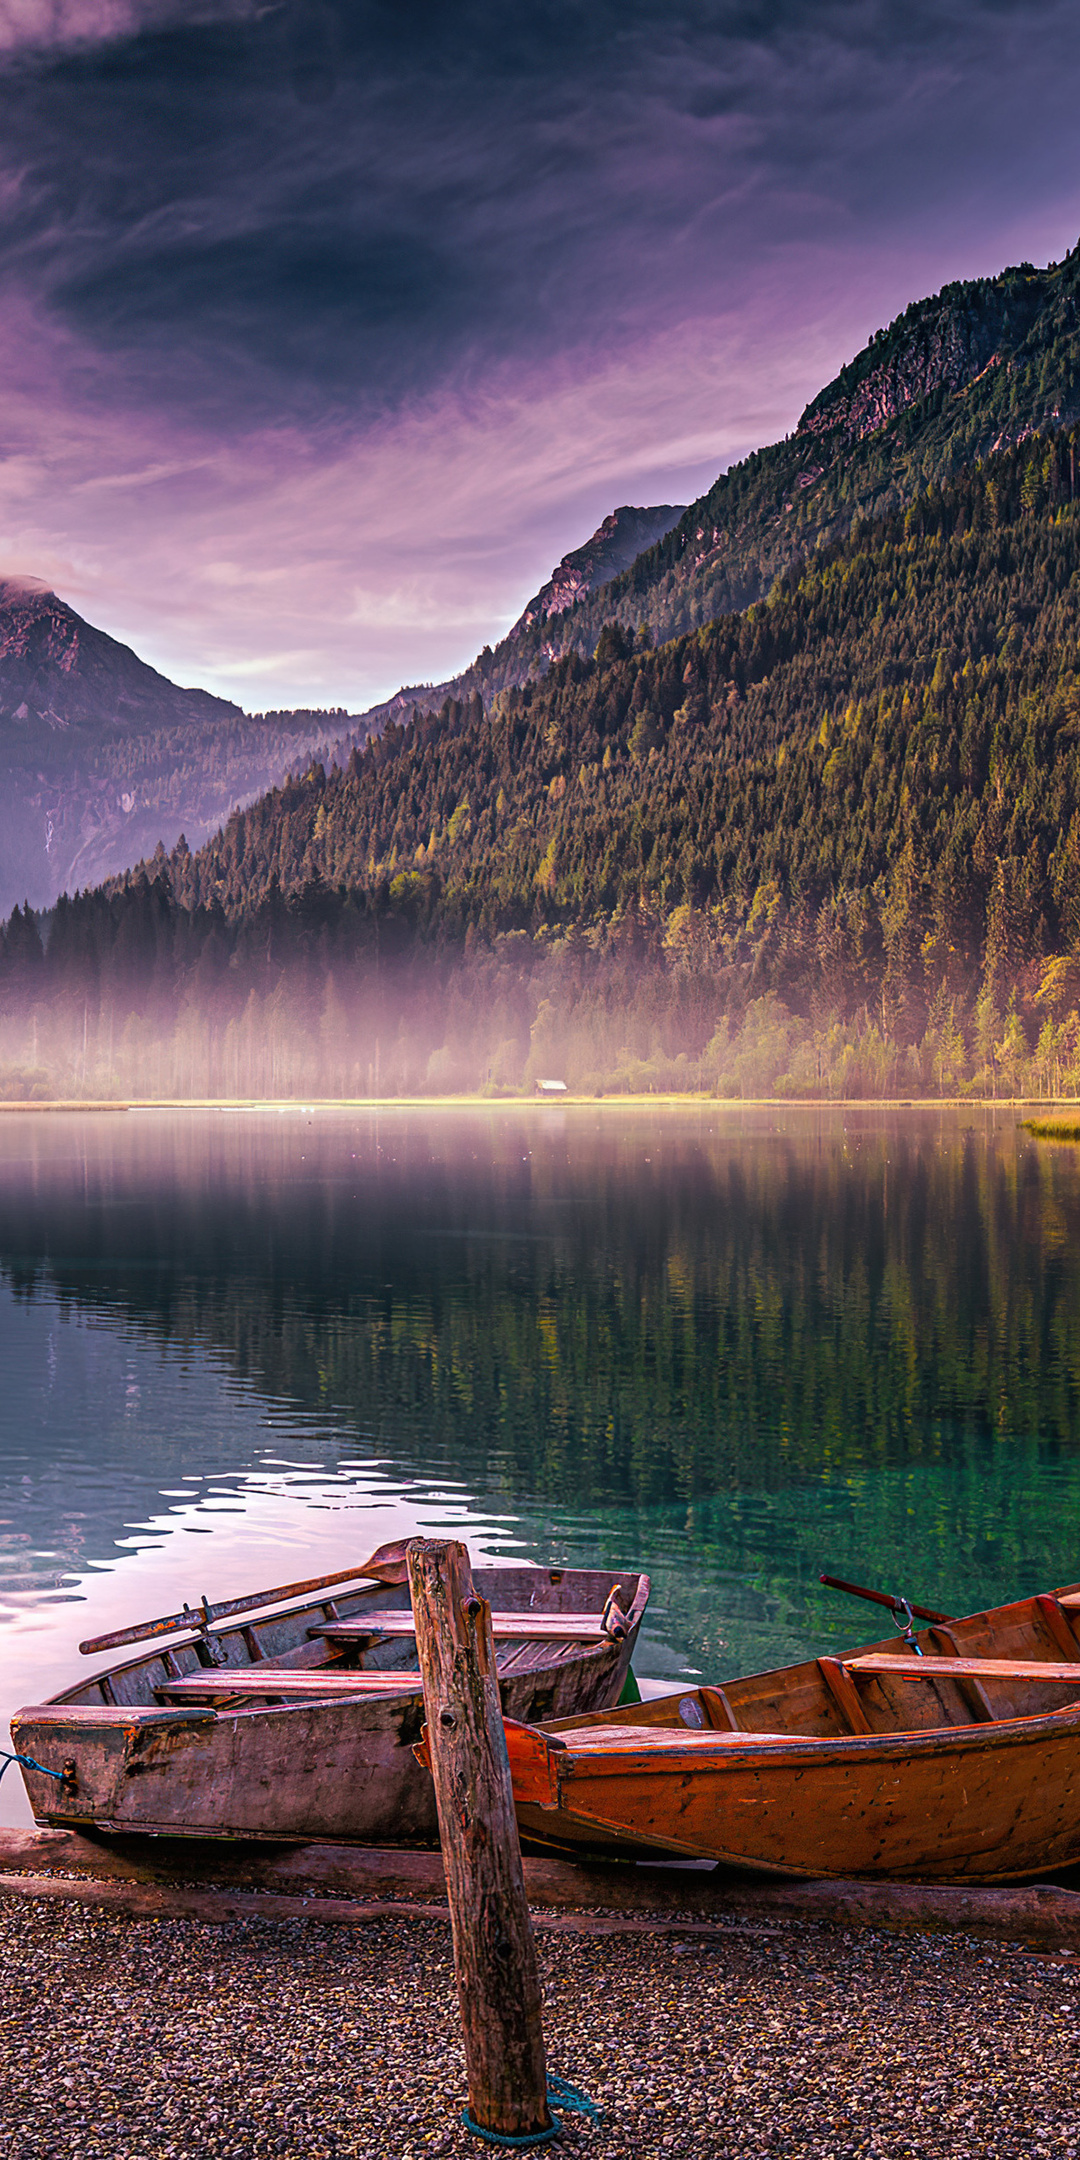 lake-jagersee-in-austria-in-early-autumn-4k-gx.jpg